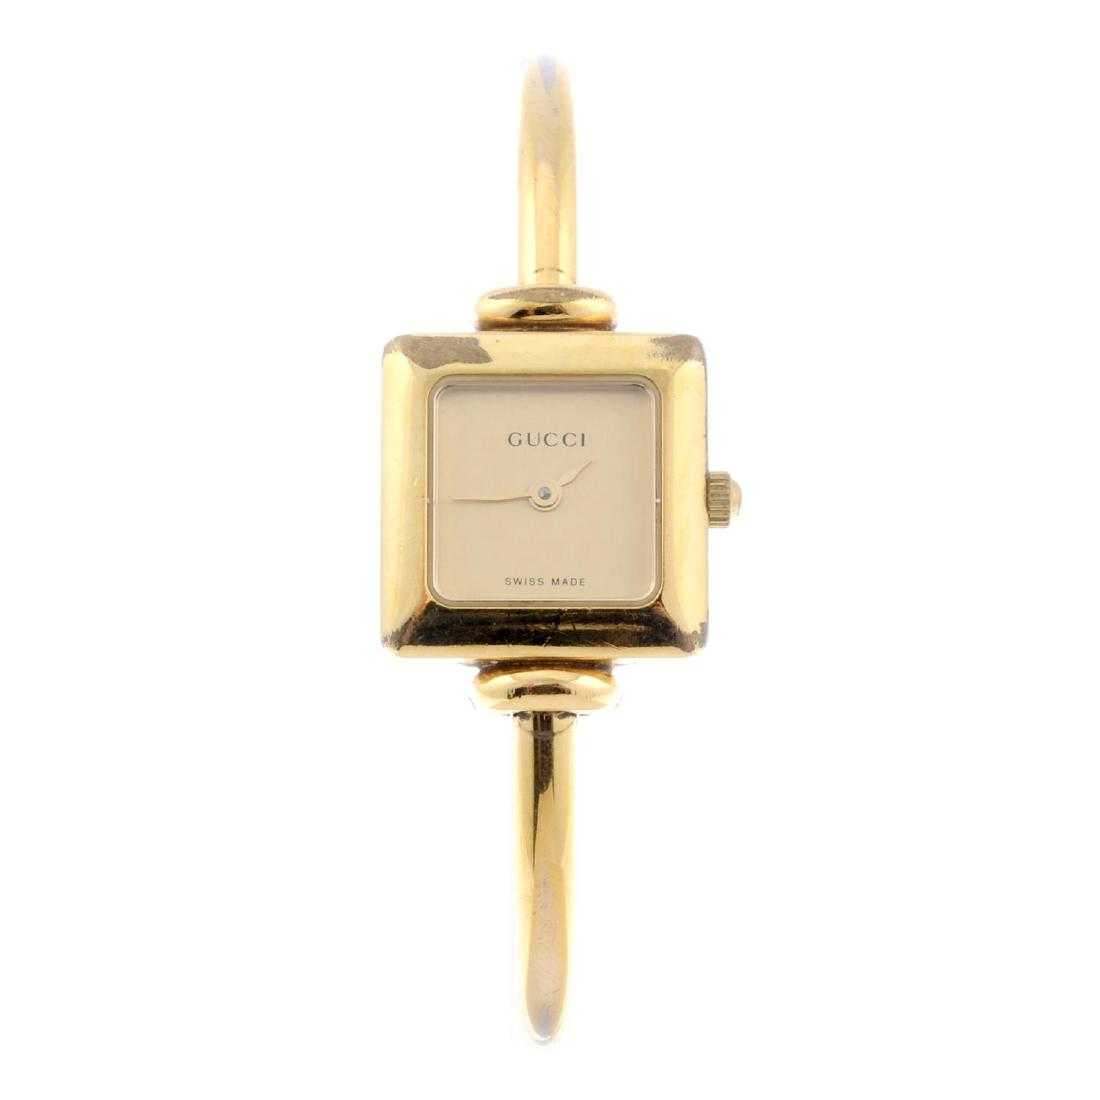 82f1336818d GUCCI - a lady s 1900L bracelet watch. Gold plated